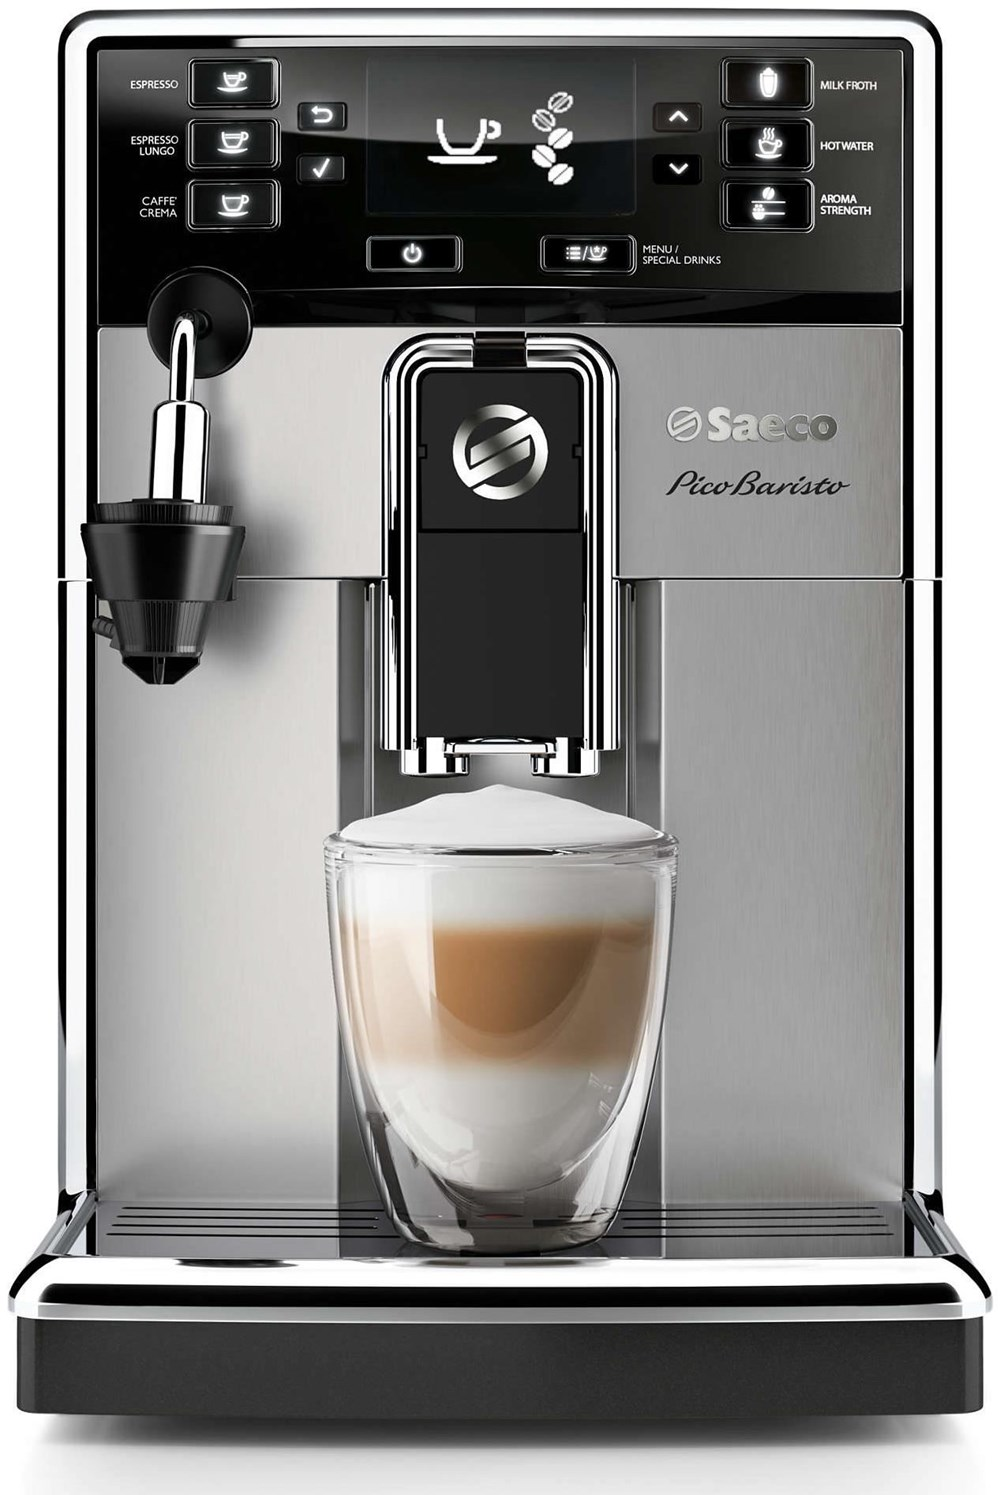 Philips Coffee Maker Bean To Cup : Philips HD8924/01 Saeco PicoBaristo Kaffeevollautomat edelstahl / silber - Bean-to-Cup Coffee ...